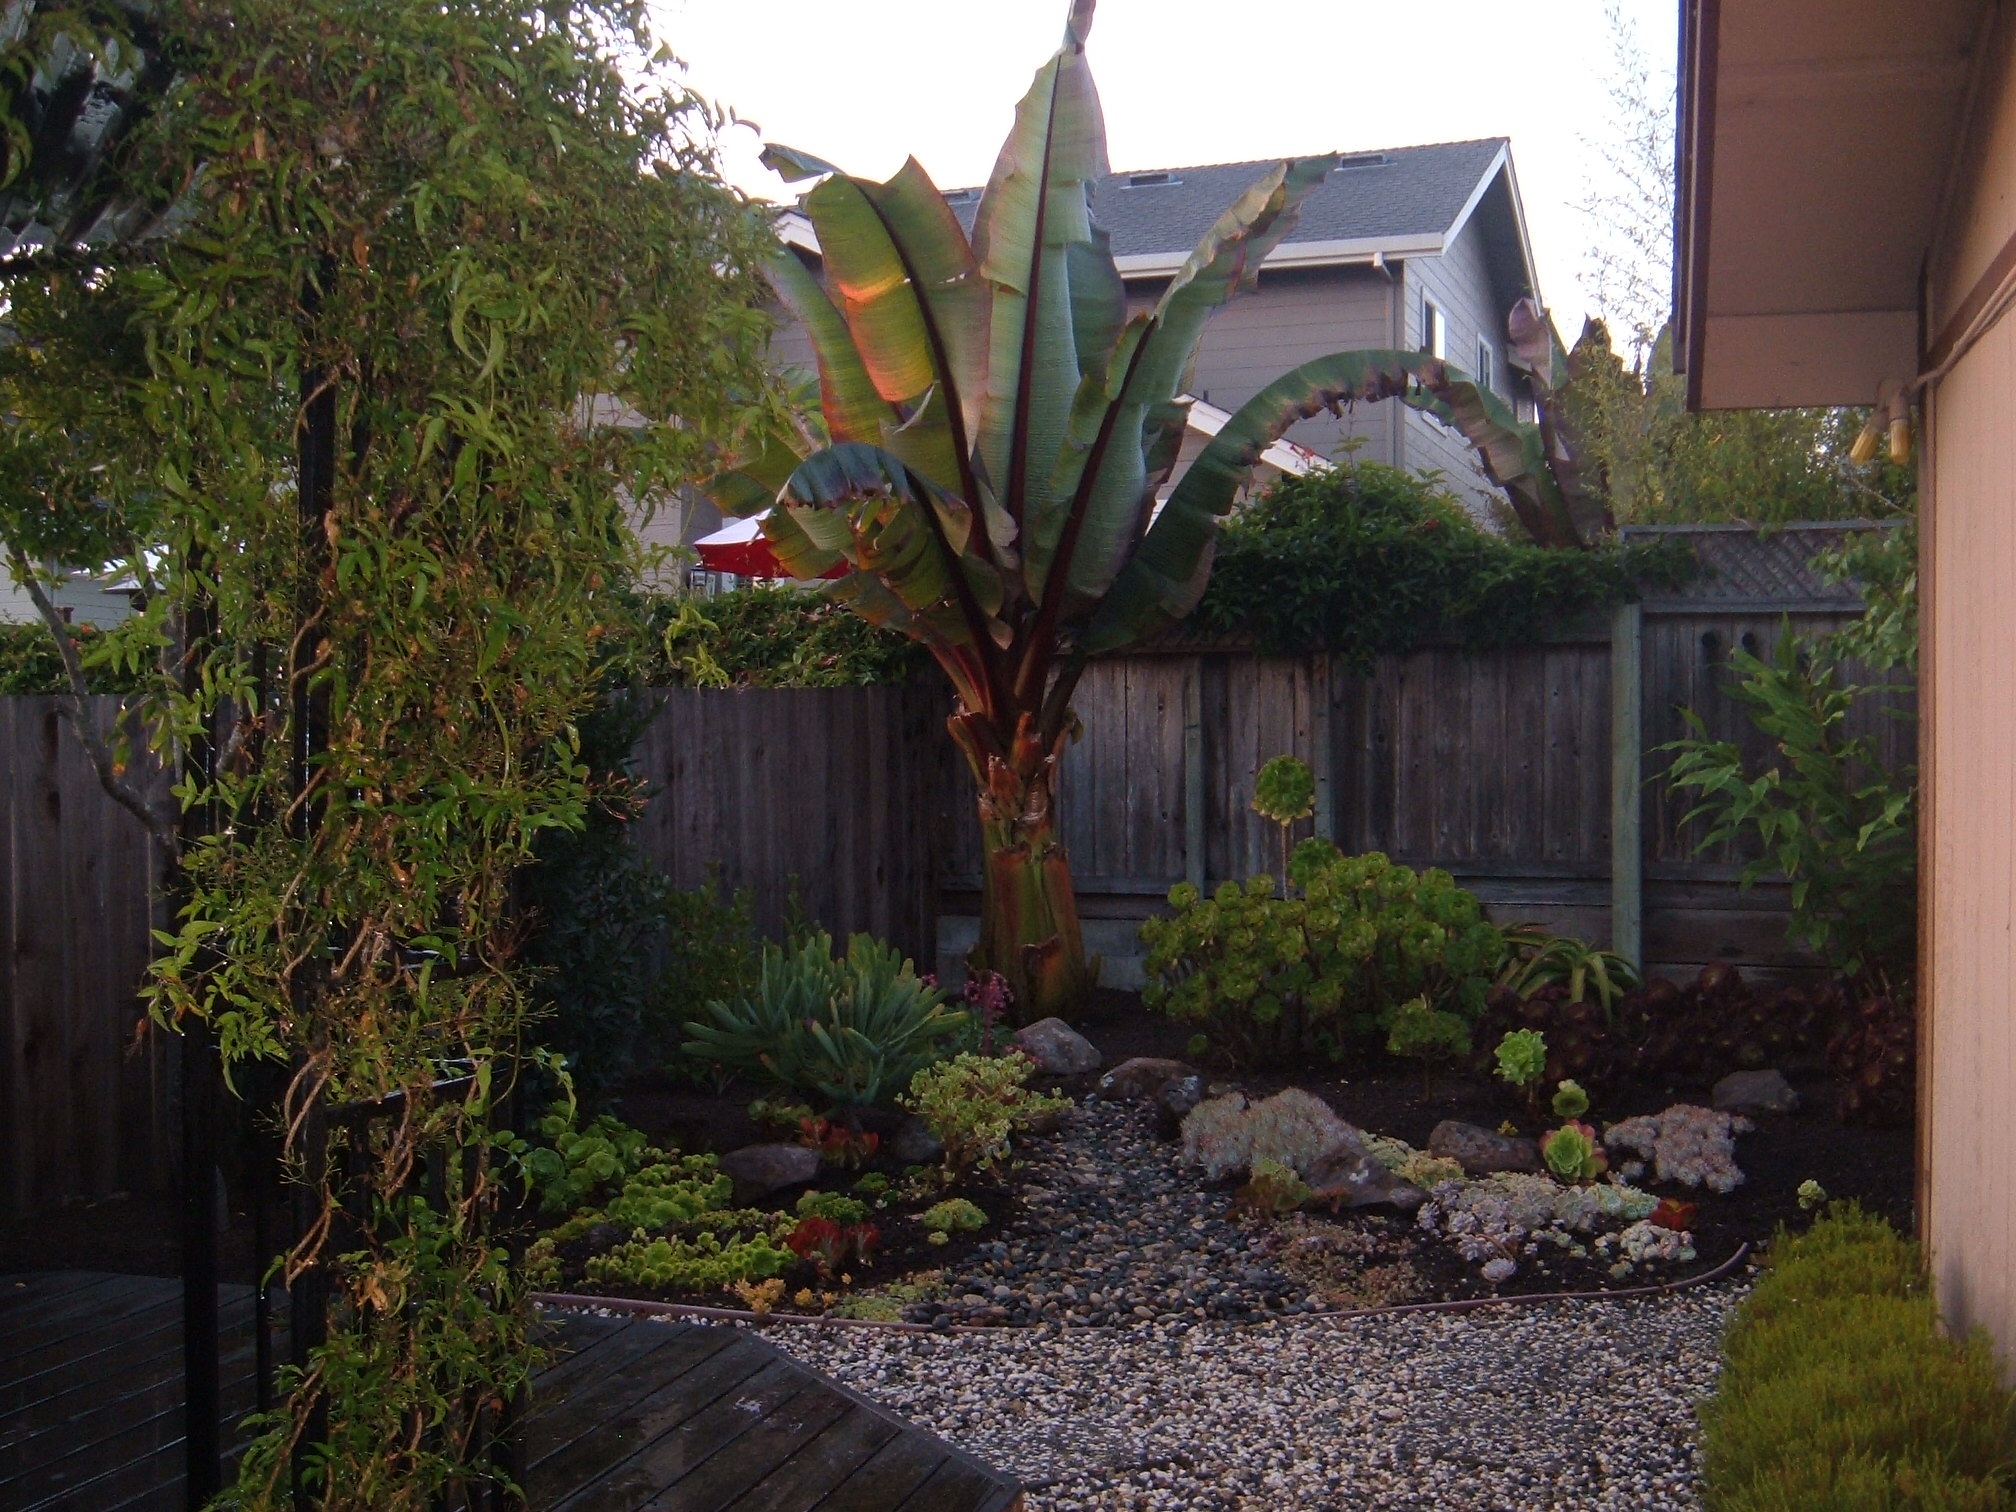 Back yard transformed with new landscaping.